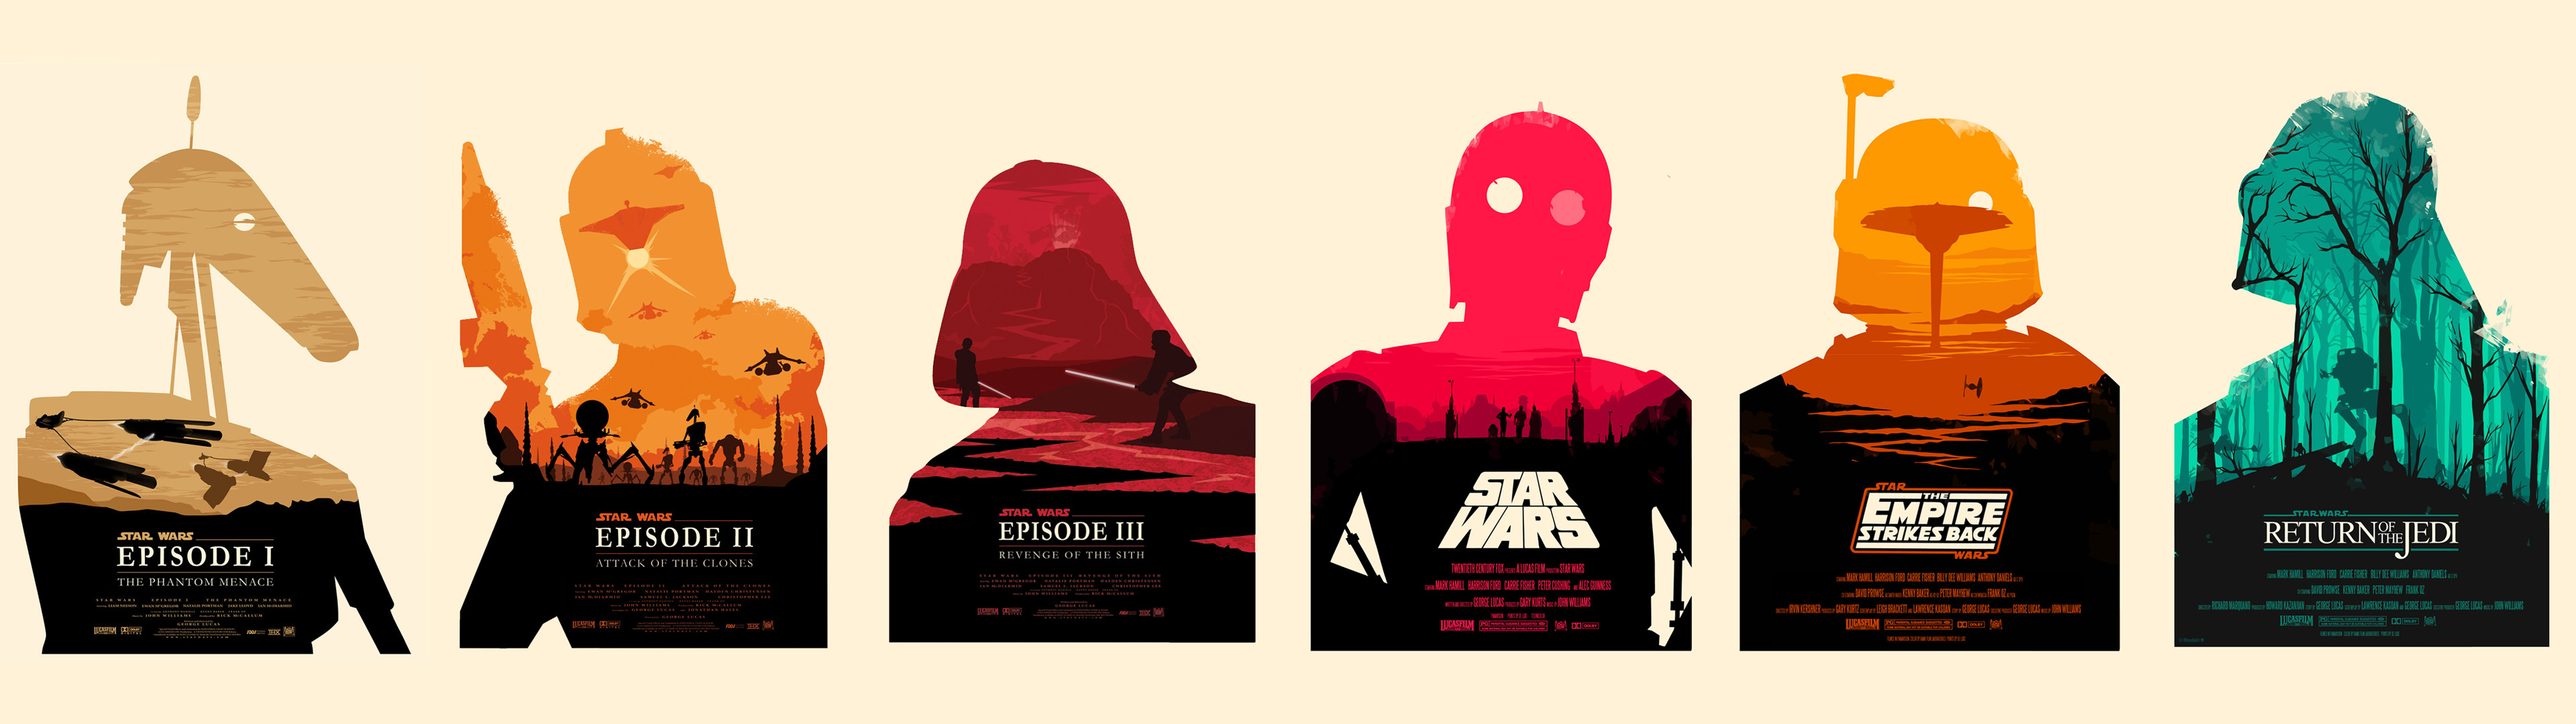 Dual monitor Star Wars posters [3840×1080] …